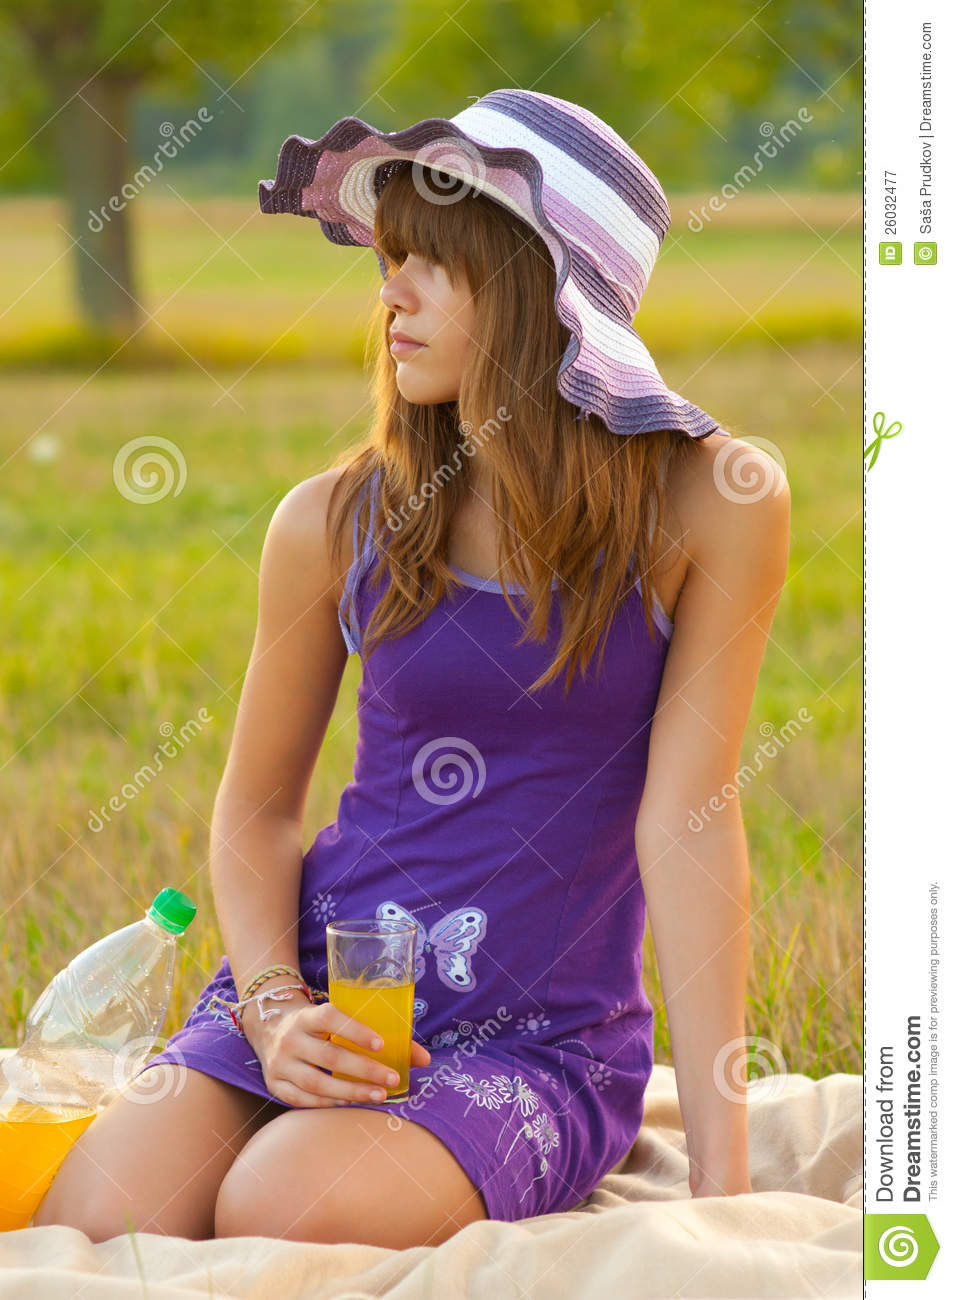 Cute Teenage Girl On The Picnic Royalty Free Stock